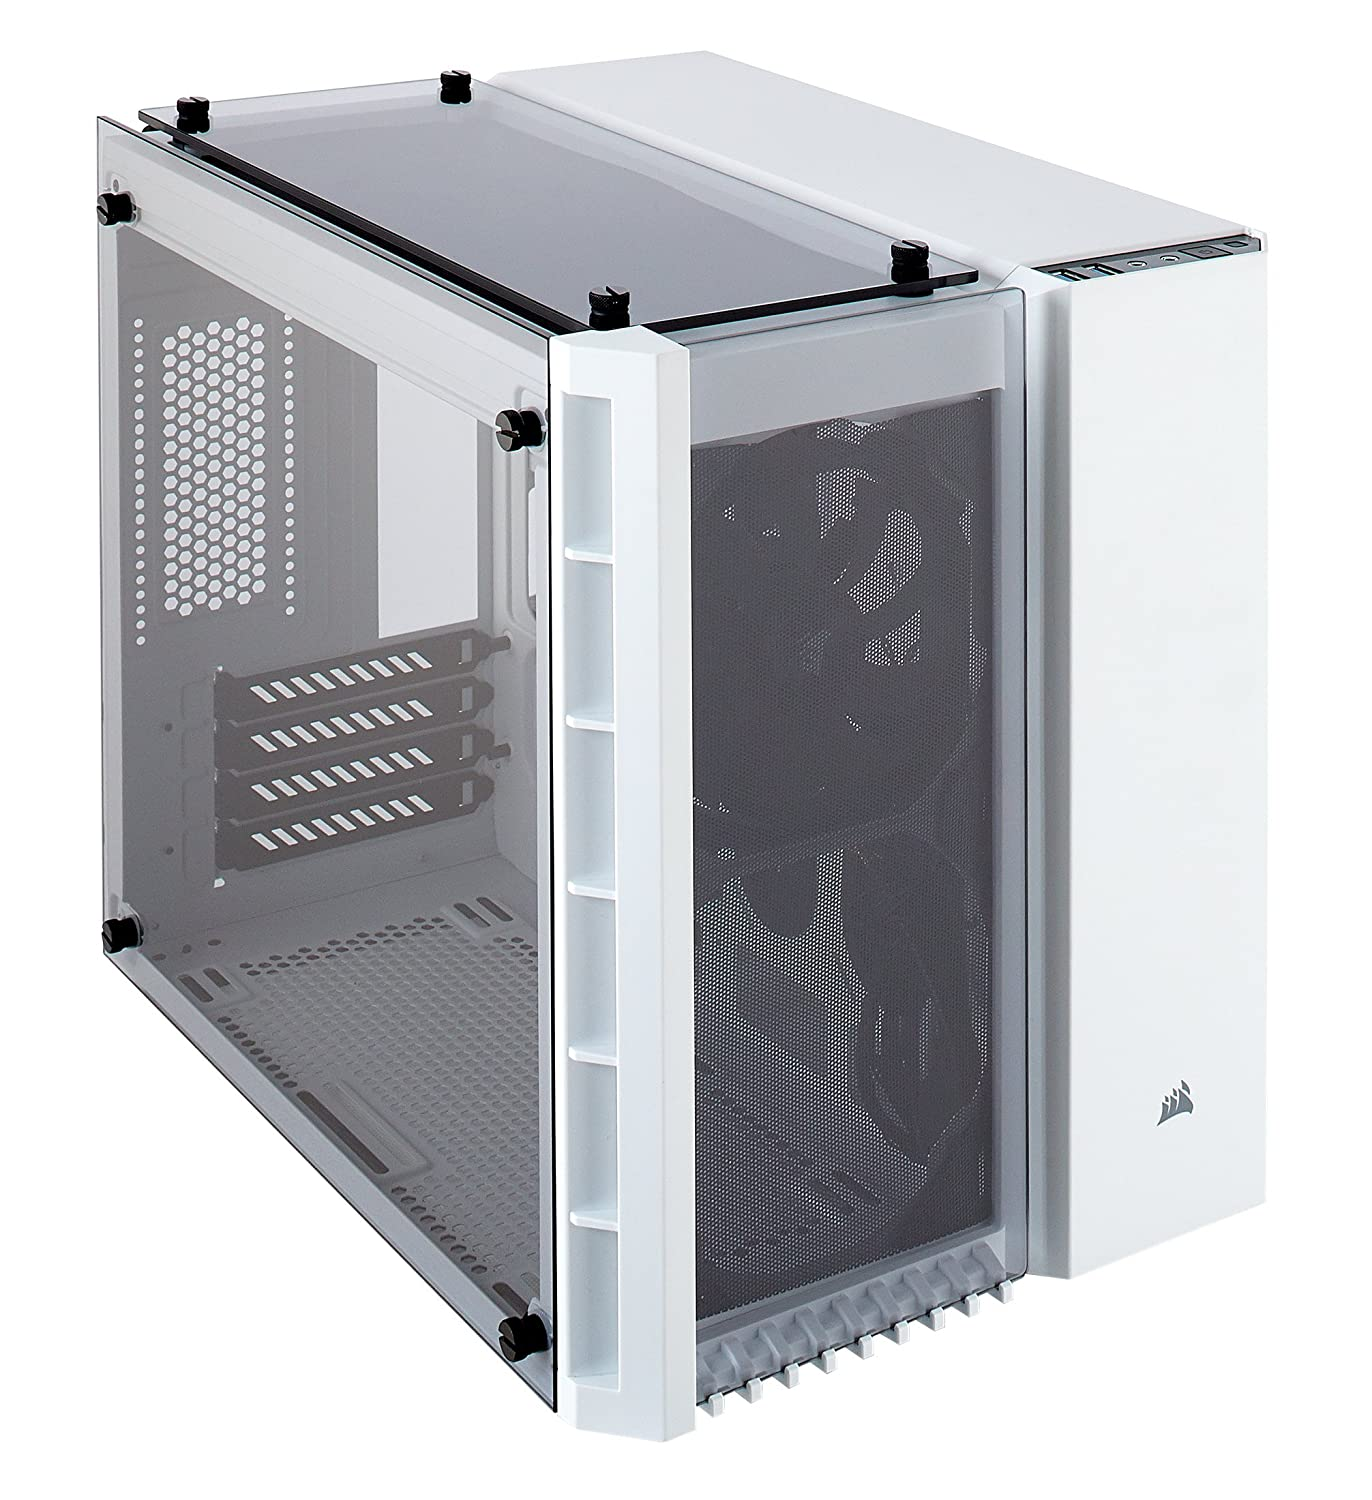 Corsair CC WW 280X Crystal Tempered Glass Micro ATX PC Case White Amazon puters & Accessories